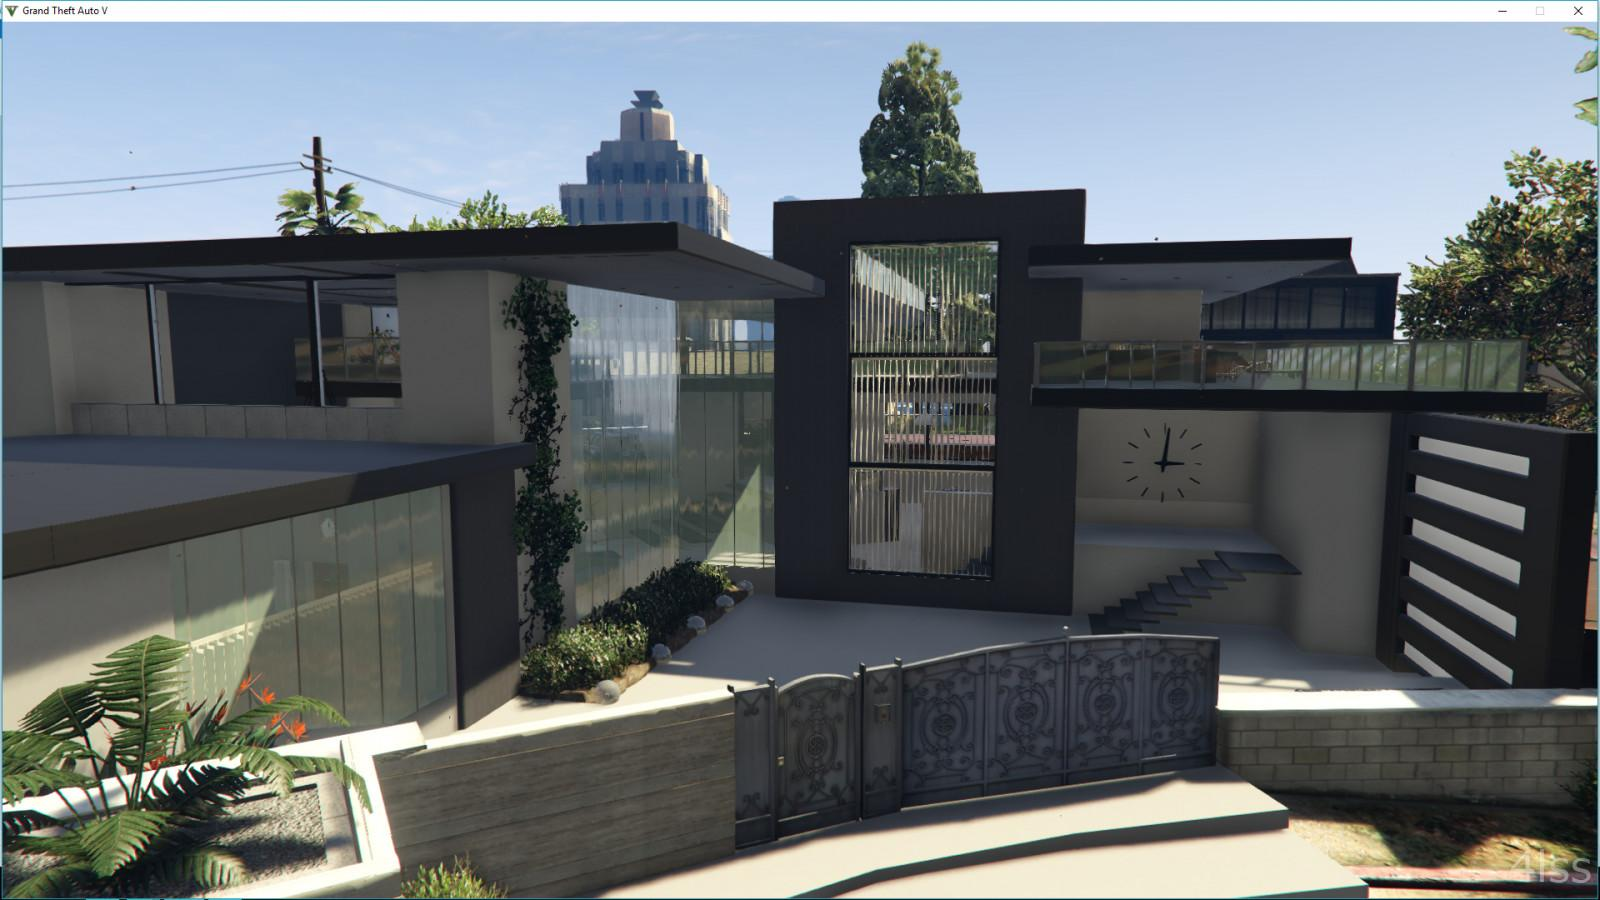 West Vinewood Modern House Gta5 Mods